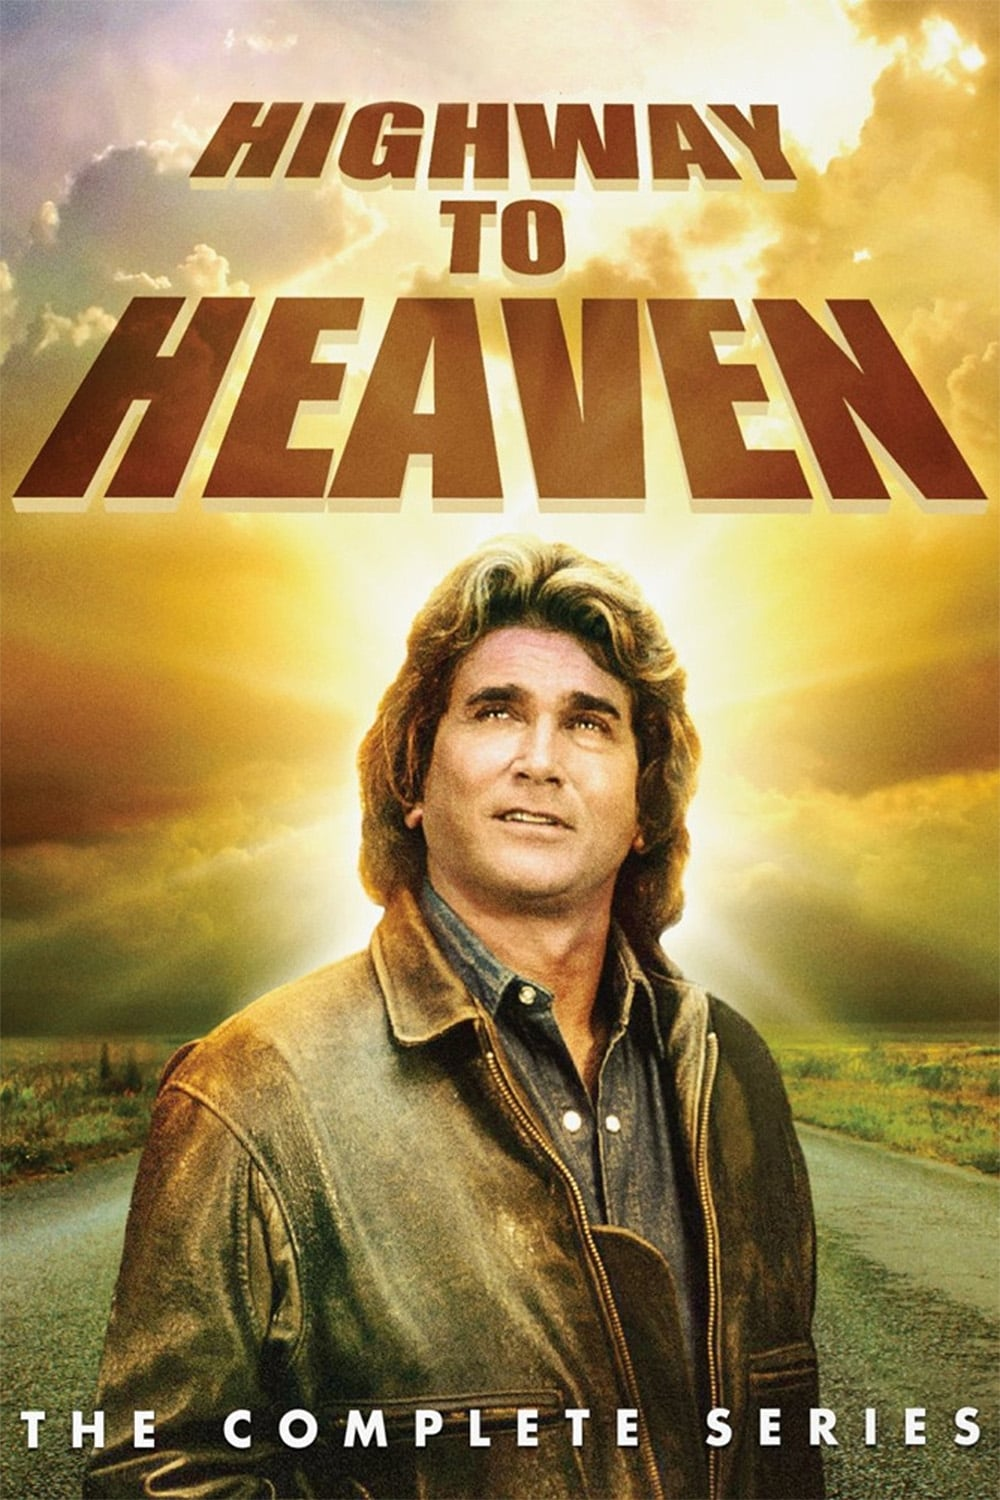 Highway to Heaven on FREECABLE TV